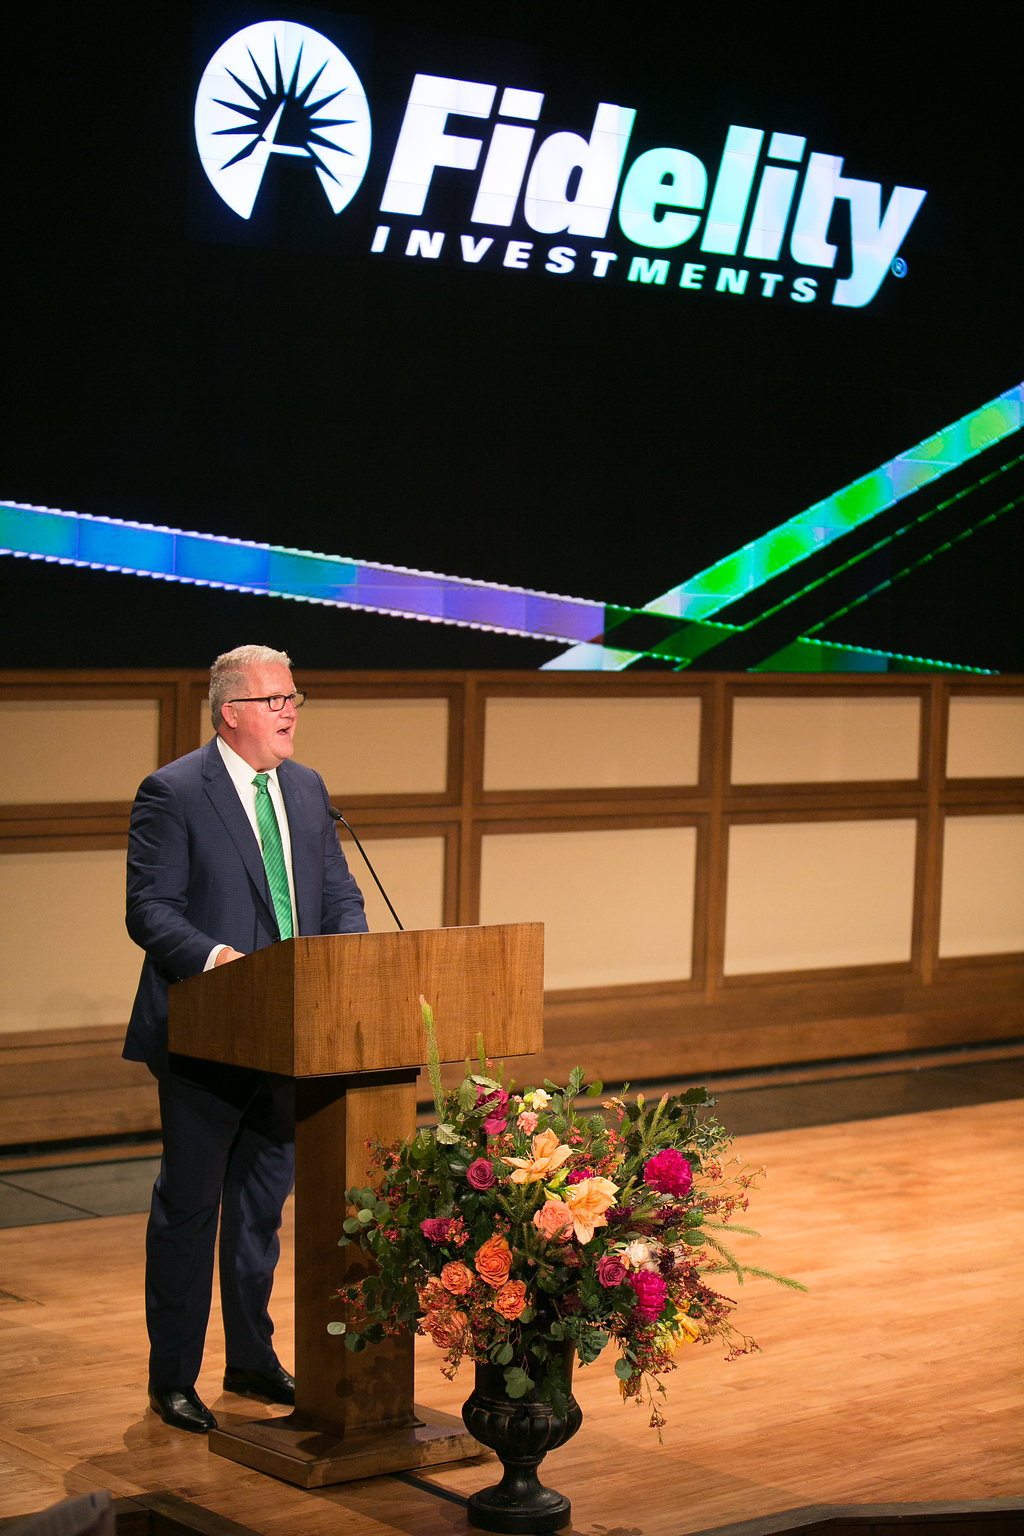 A_Night_Of_Lights_2017-0121